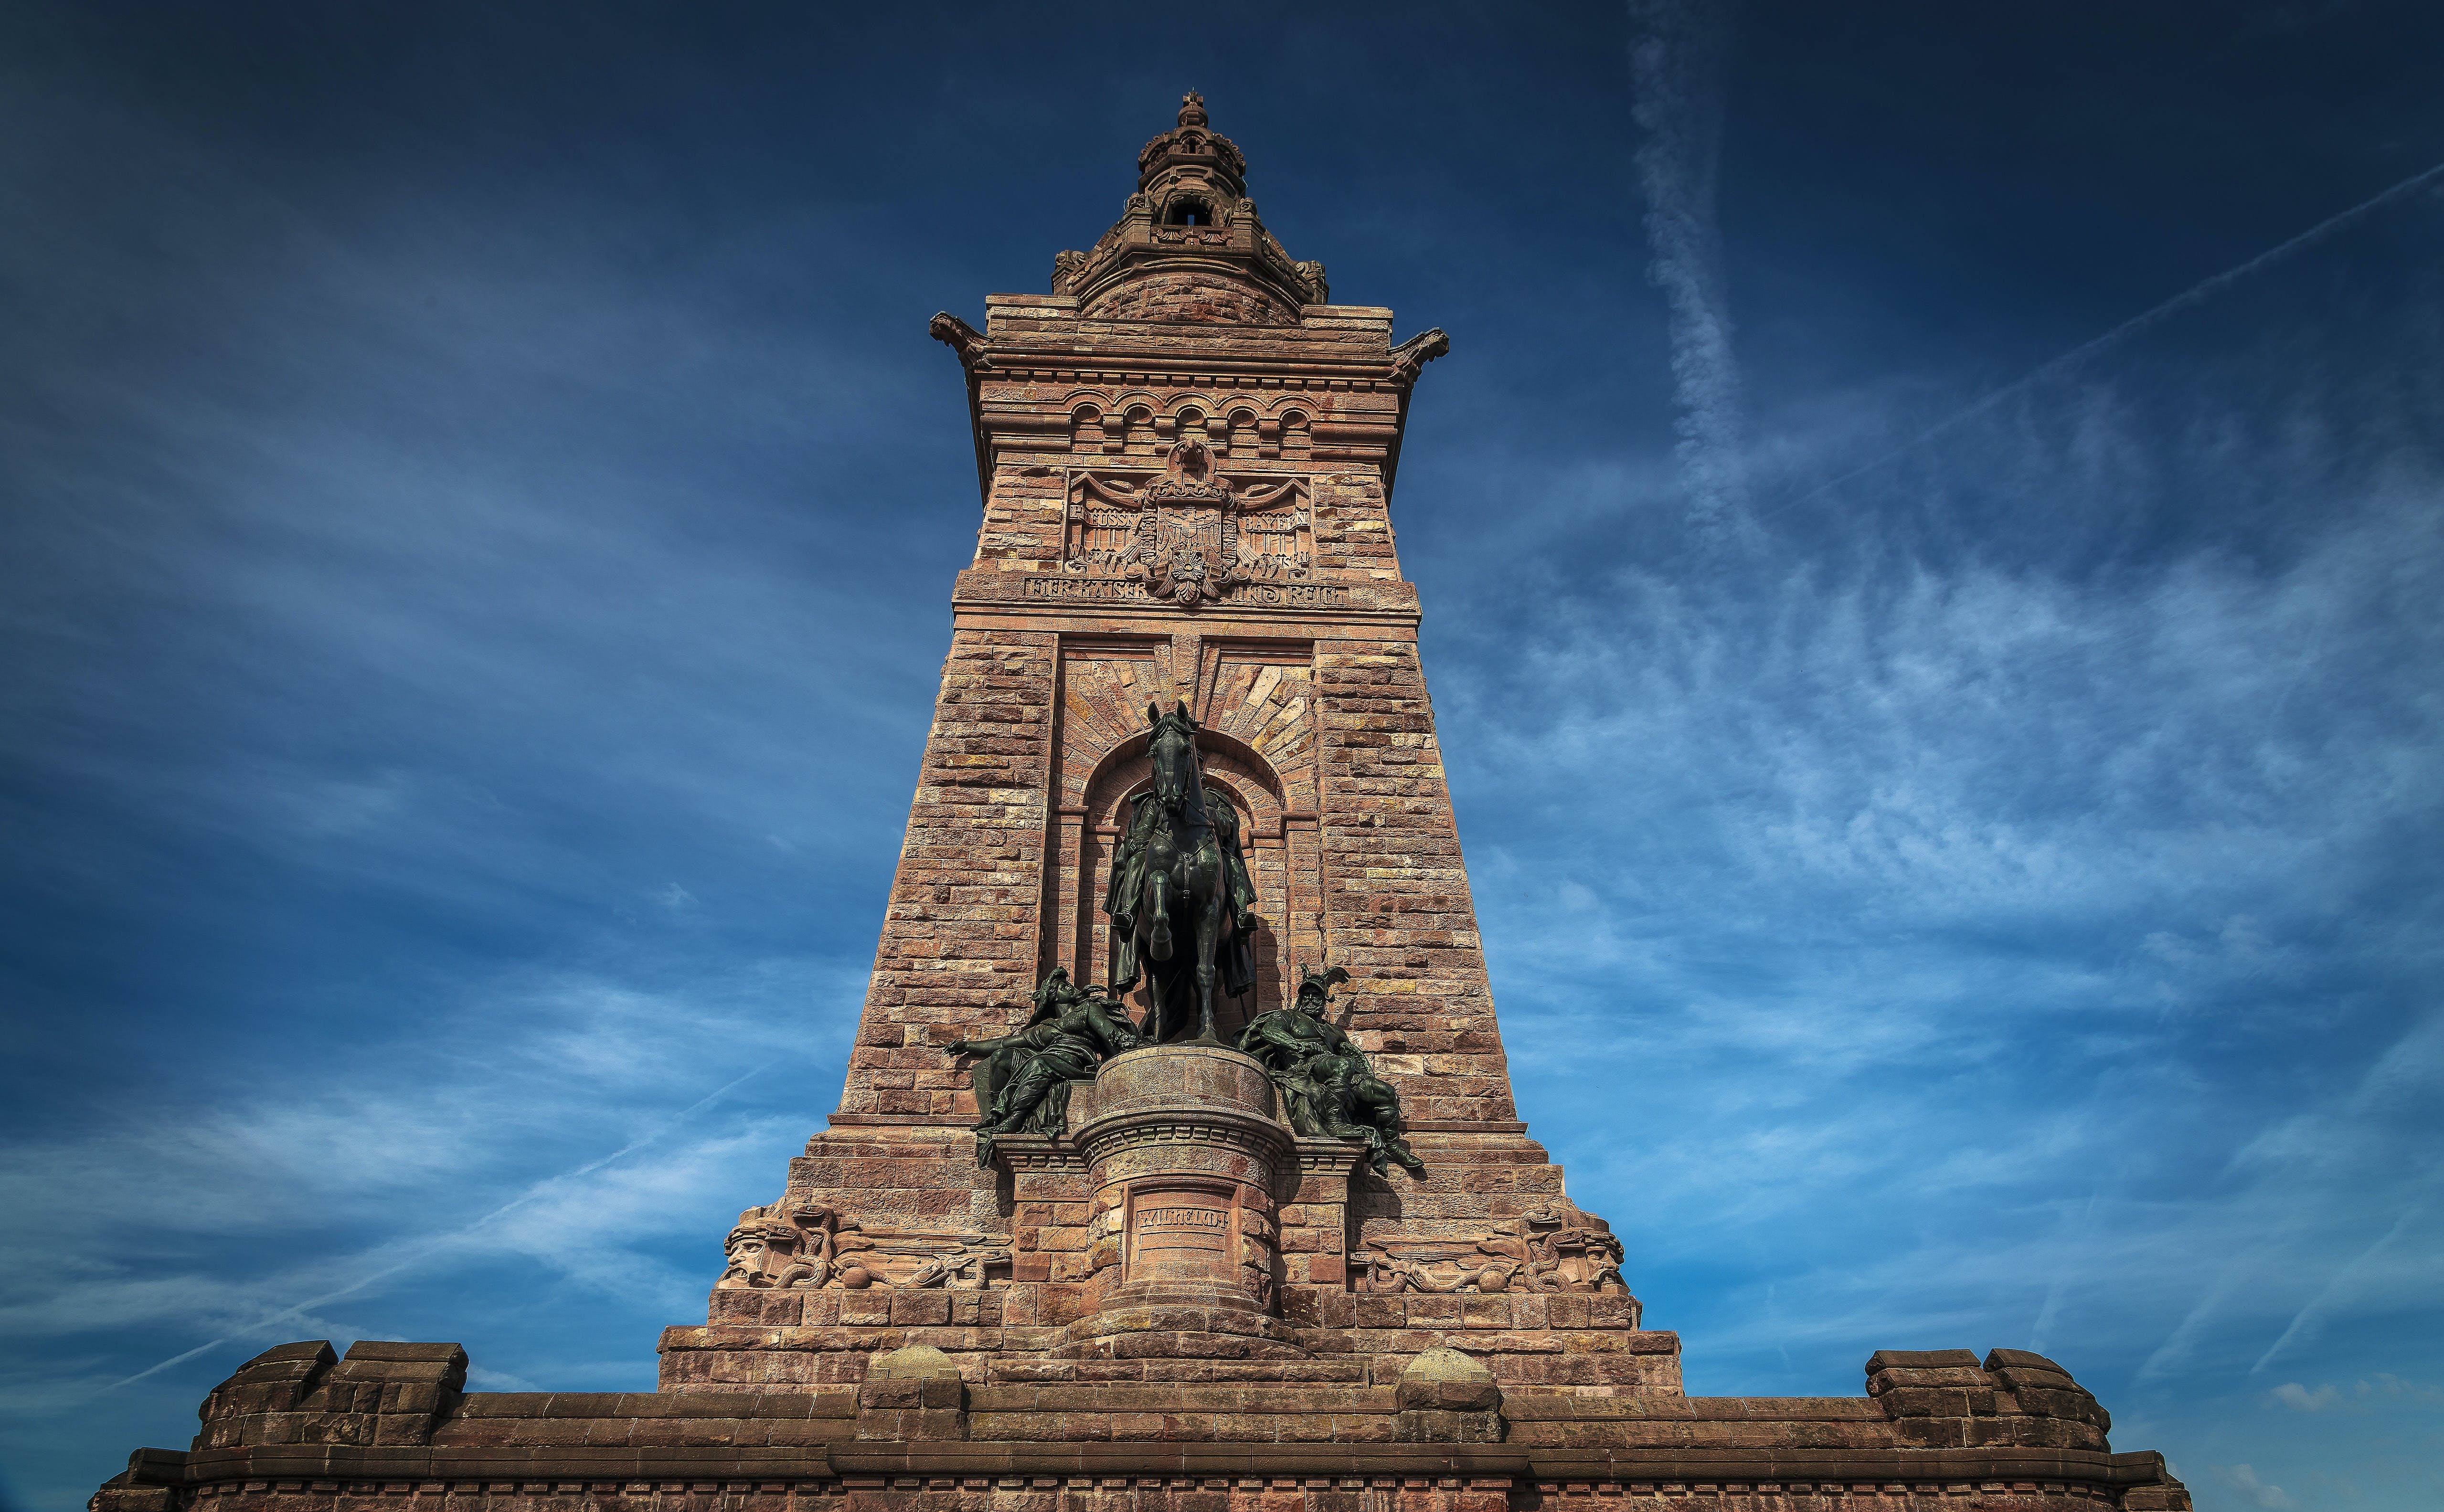 Low Angle Shot of the Barbarossa Monument